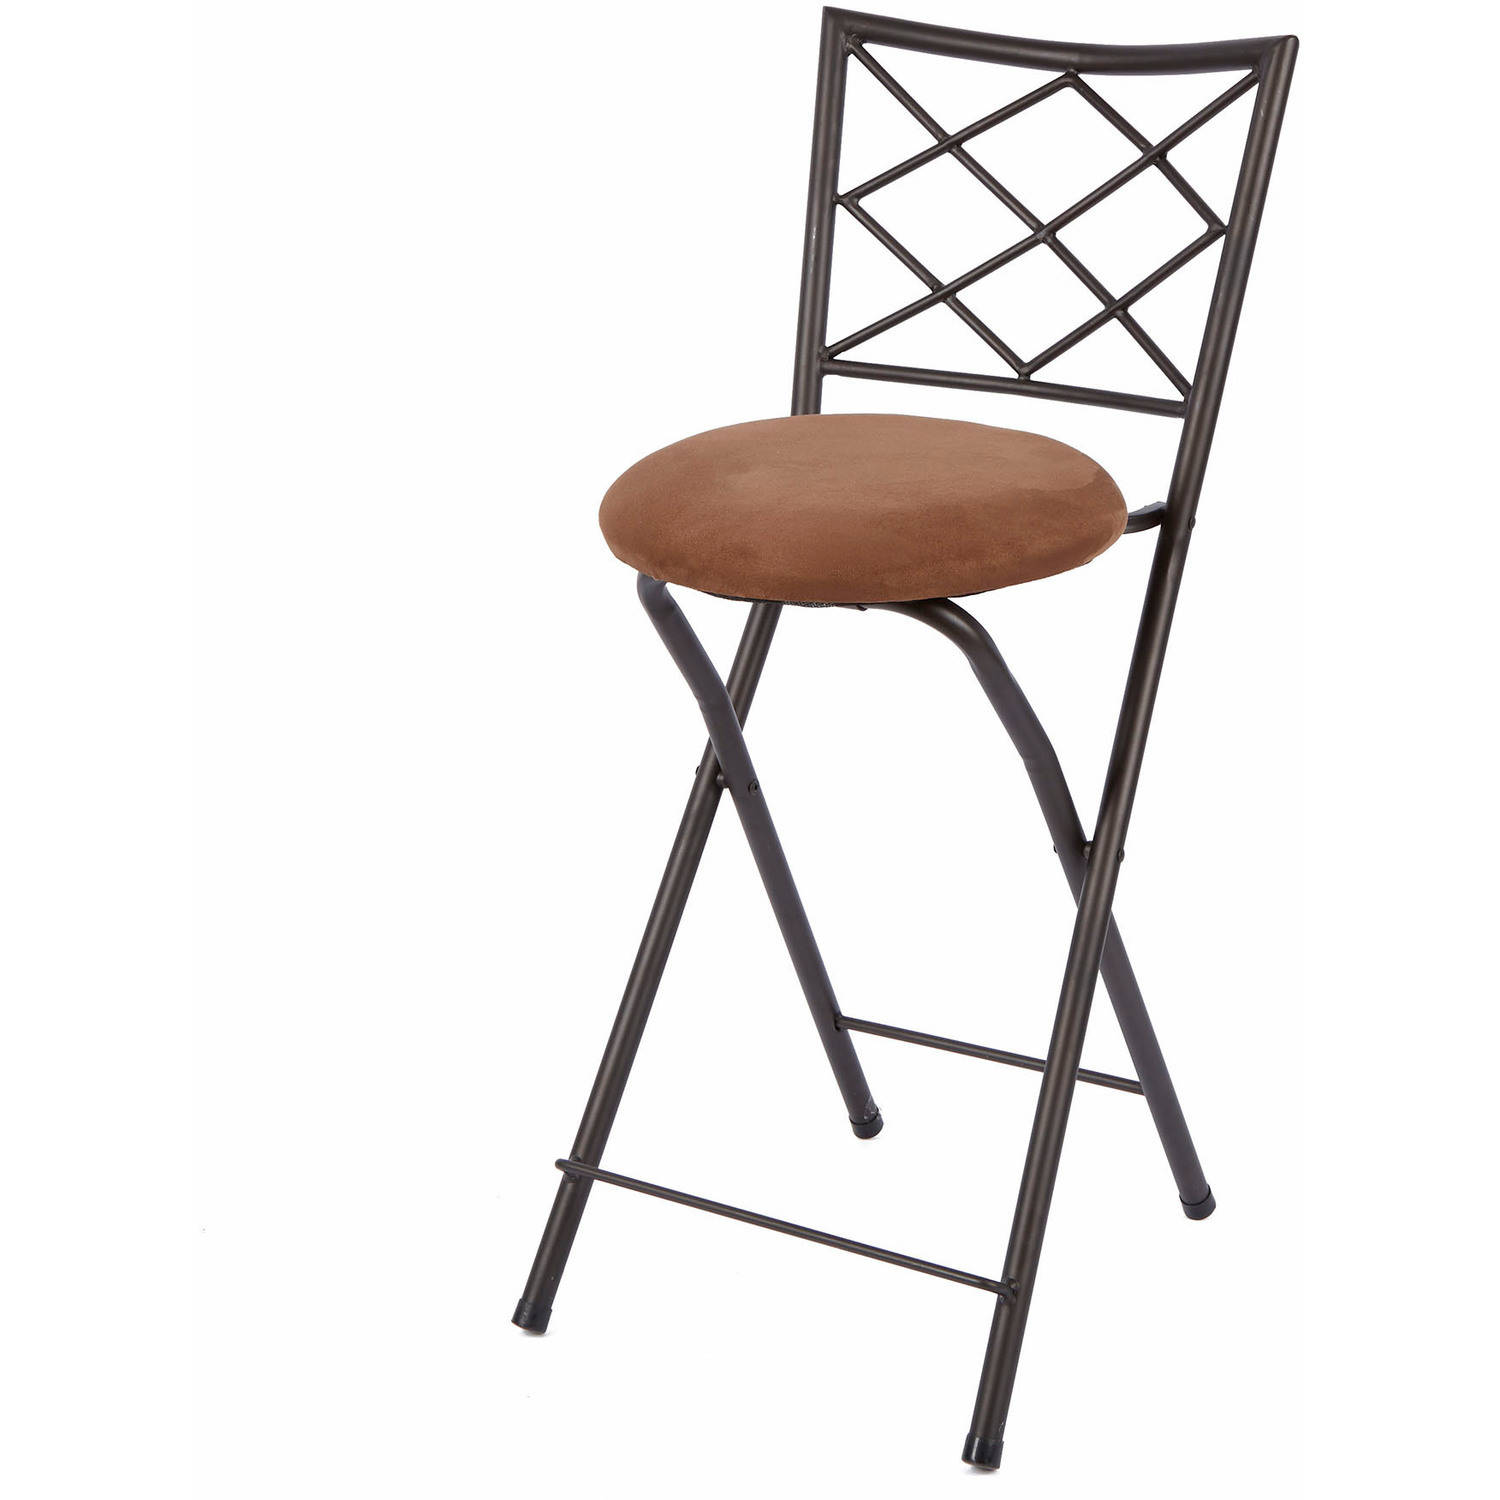 "Diamond Metal X-Back Bronze 42"" Folding Stool, Multiple Colors"